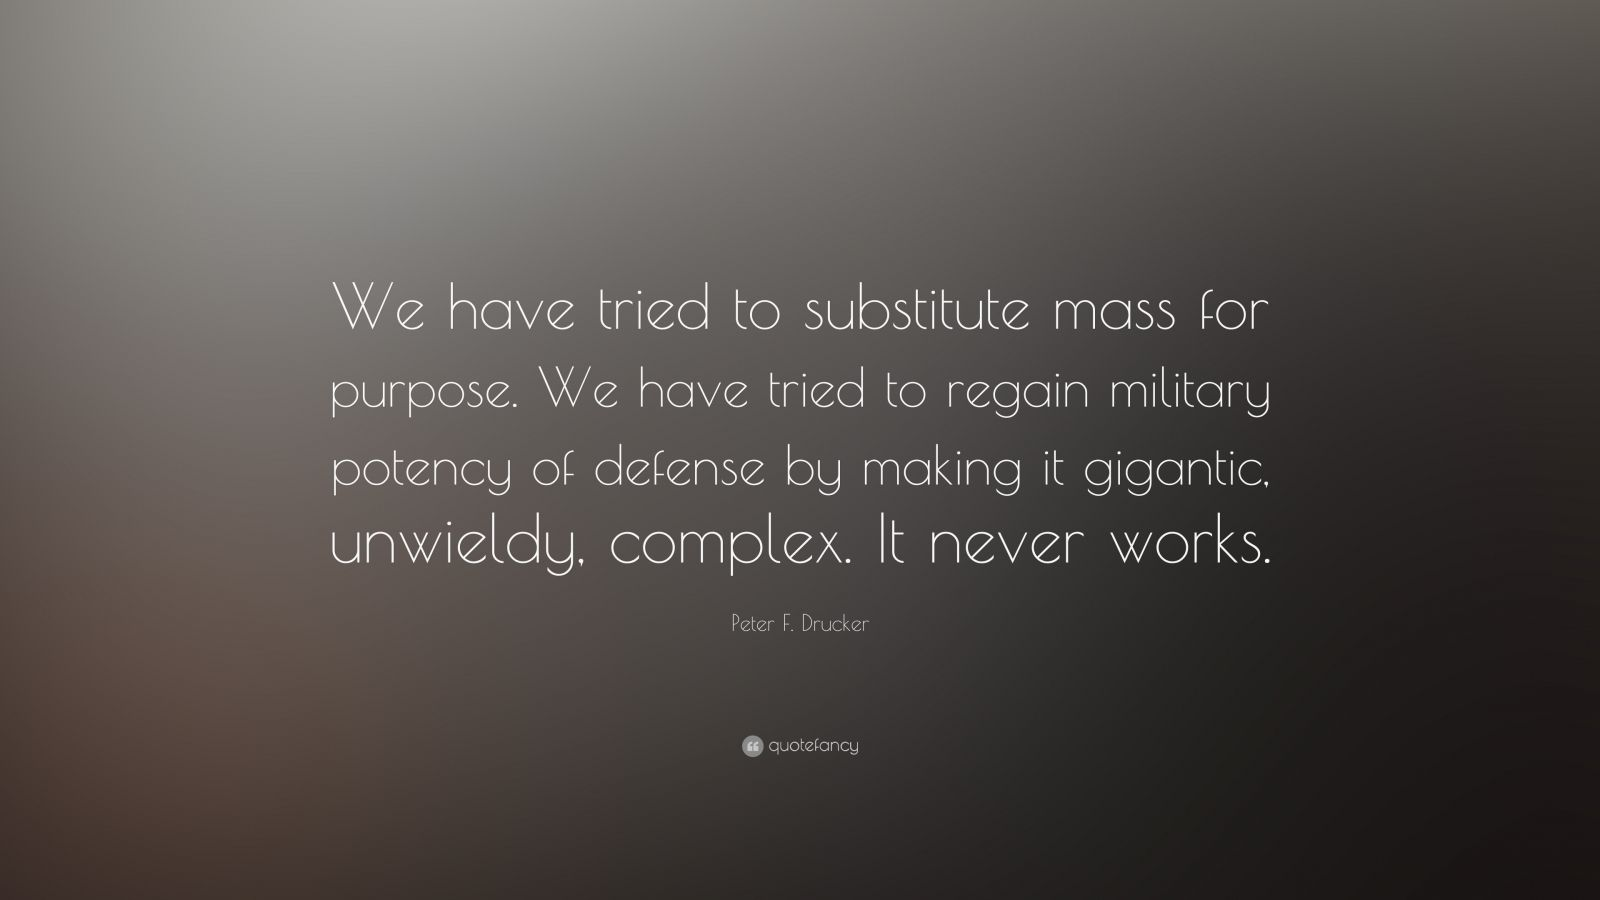 """Peter F. Drucker Quote: """"We have tried to substitute mass for purpose. We have tried to regain military potency of defense by making it gigantic, unwieldy, complex. It never works."""""""